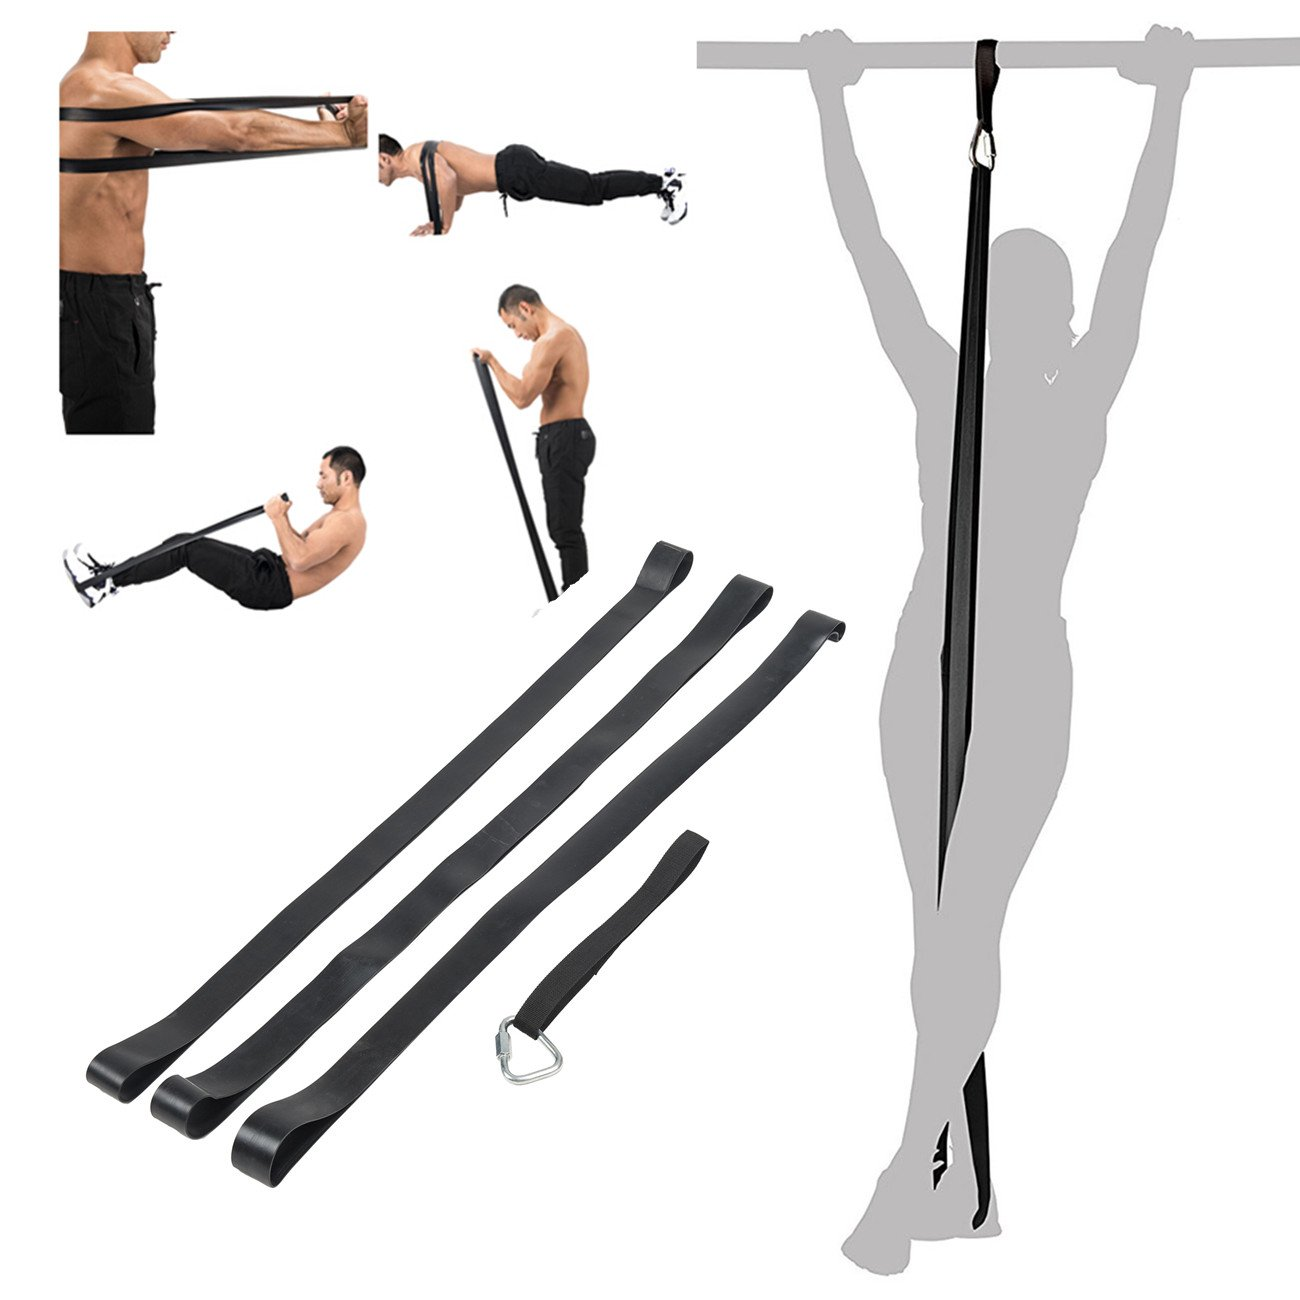 Z ZELUS 3PCS Pull Up Assistance Bands Mobility & Powerlifting Exercise Resistance for Body Fitness Bands by Z ZELUS